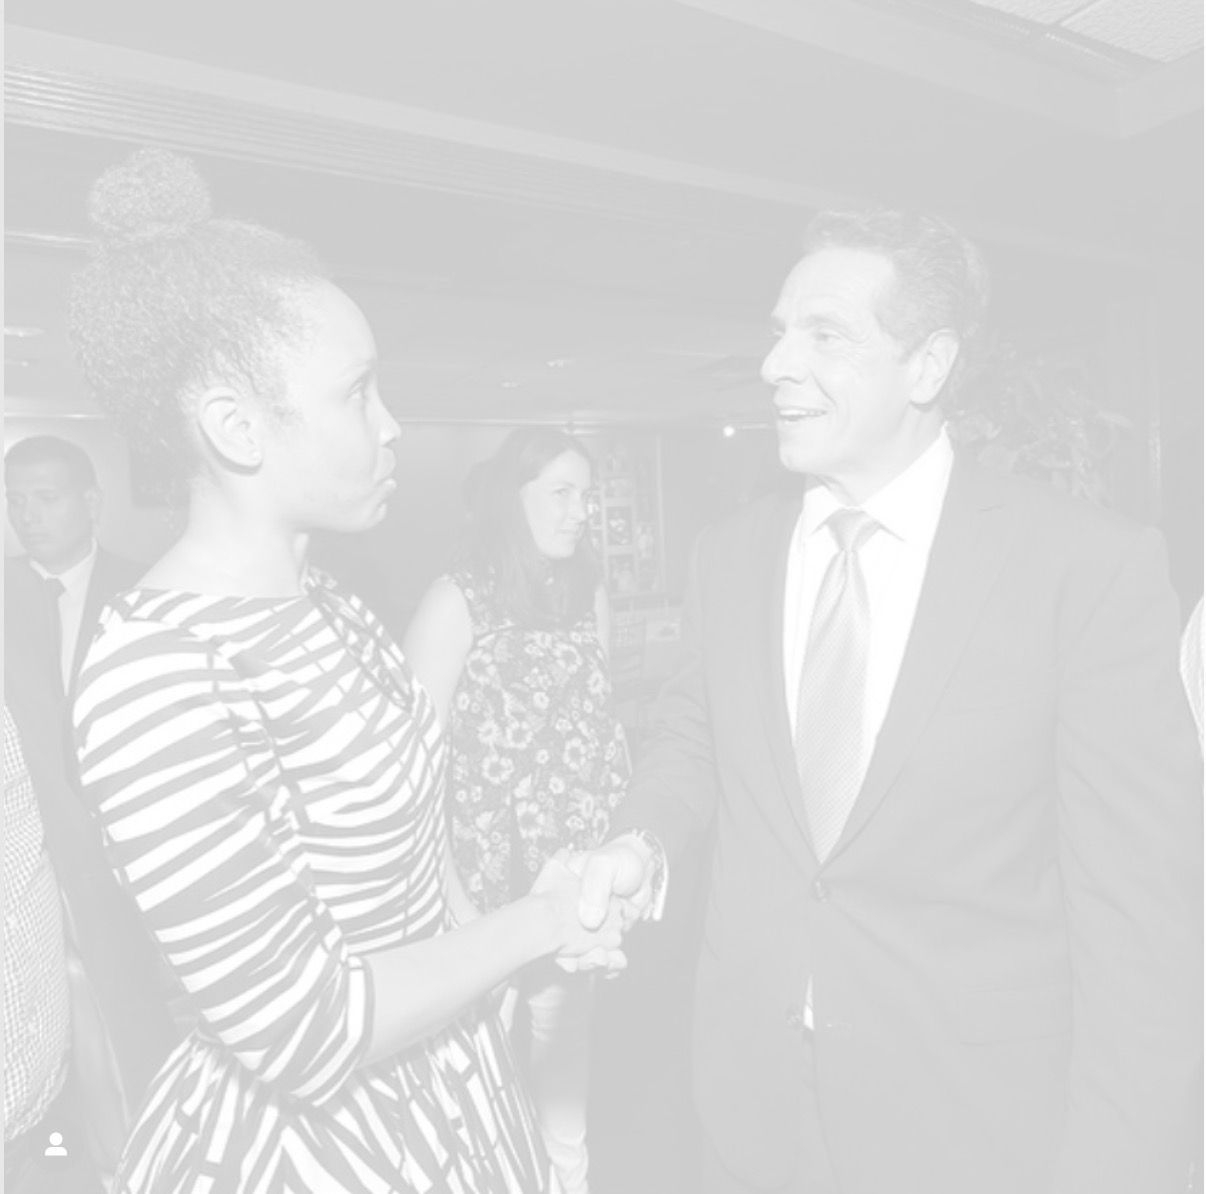 Speaking with Gov. Cuomo